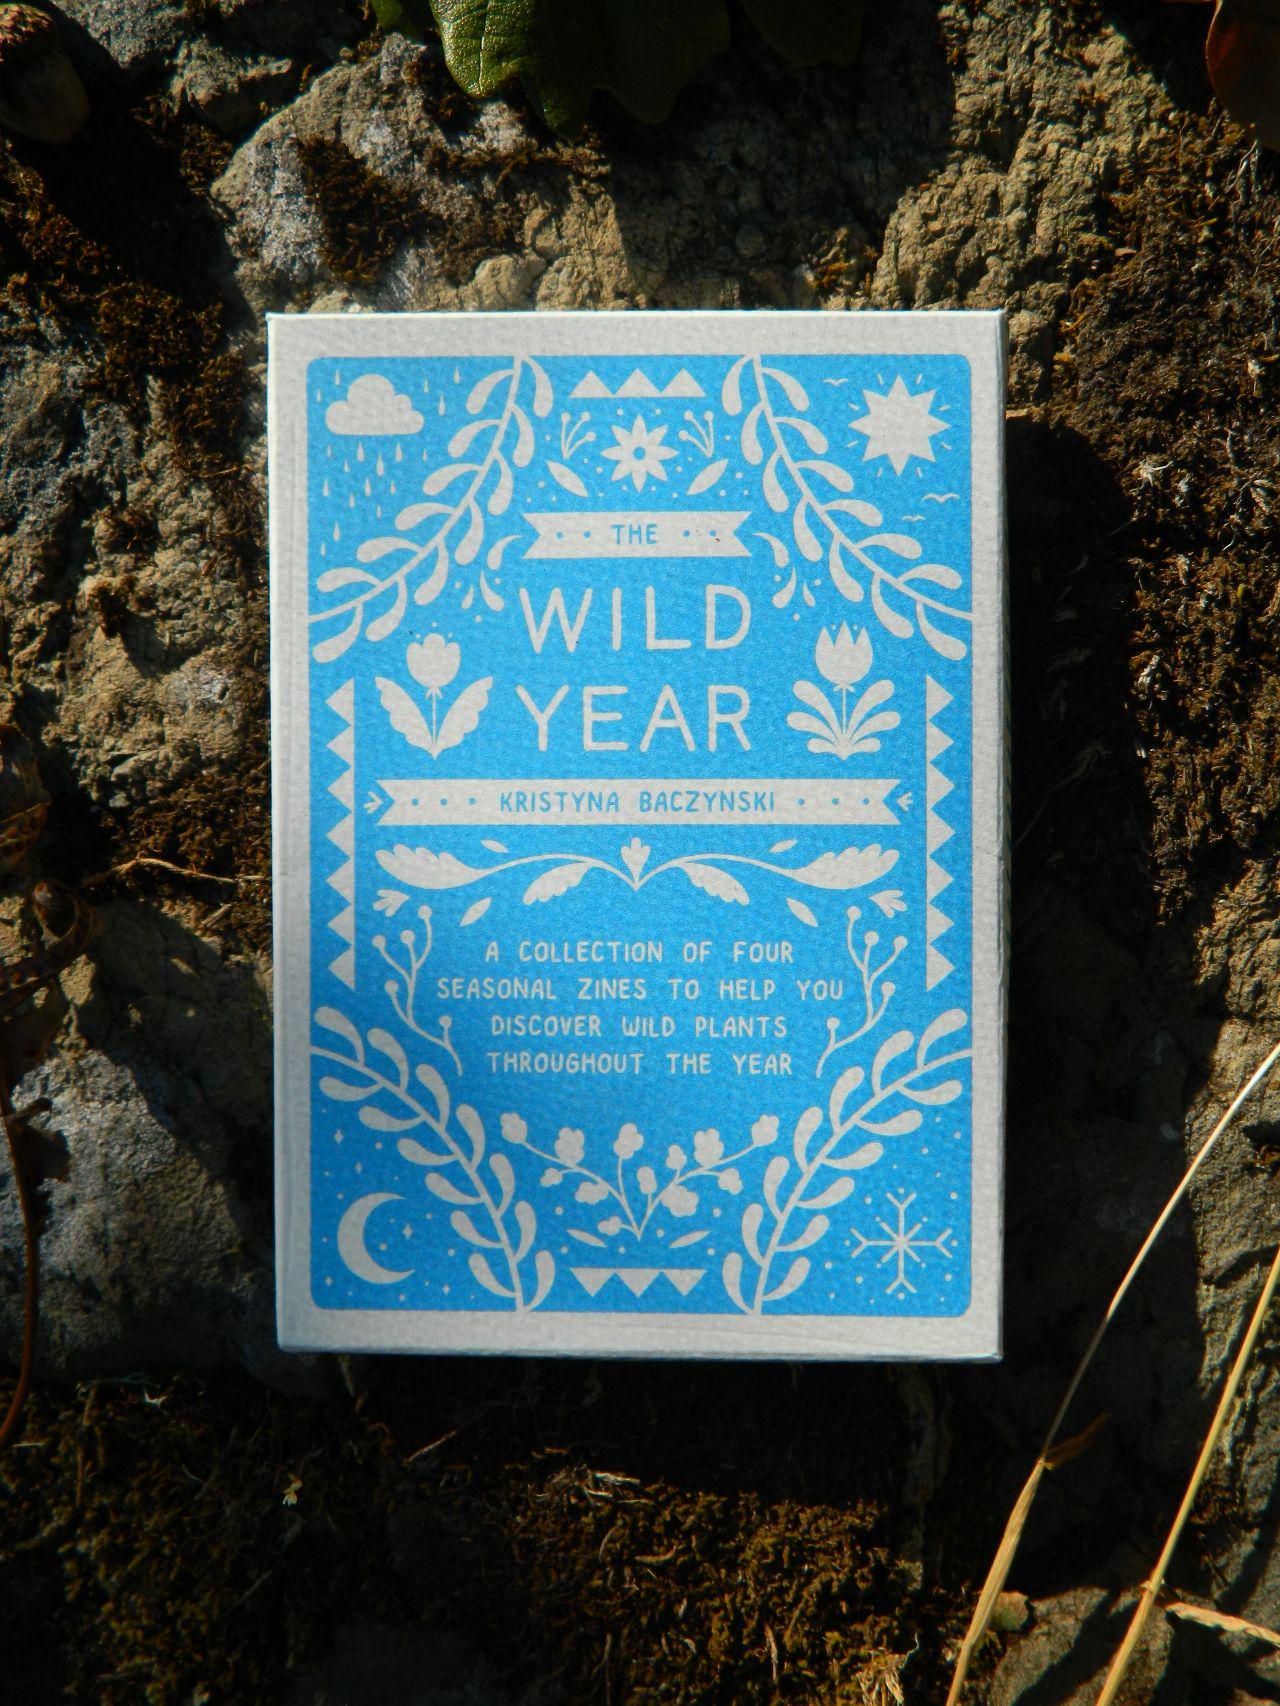 The Wild Year zine set by Kristyna Baczynski